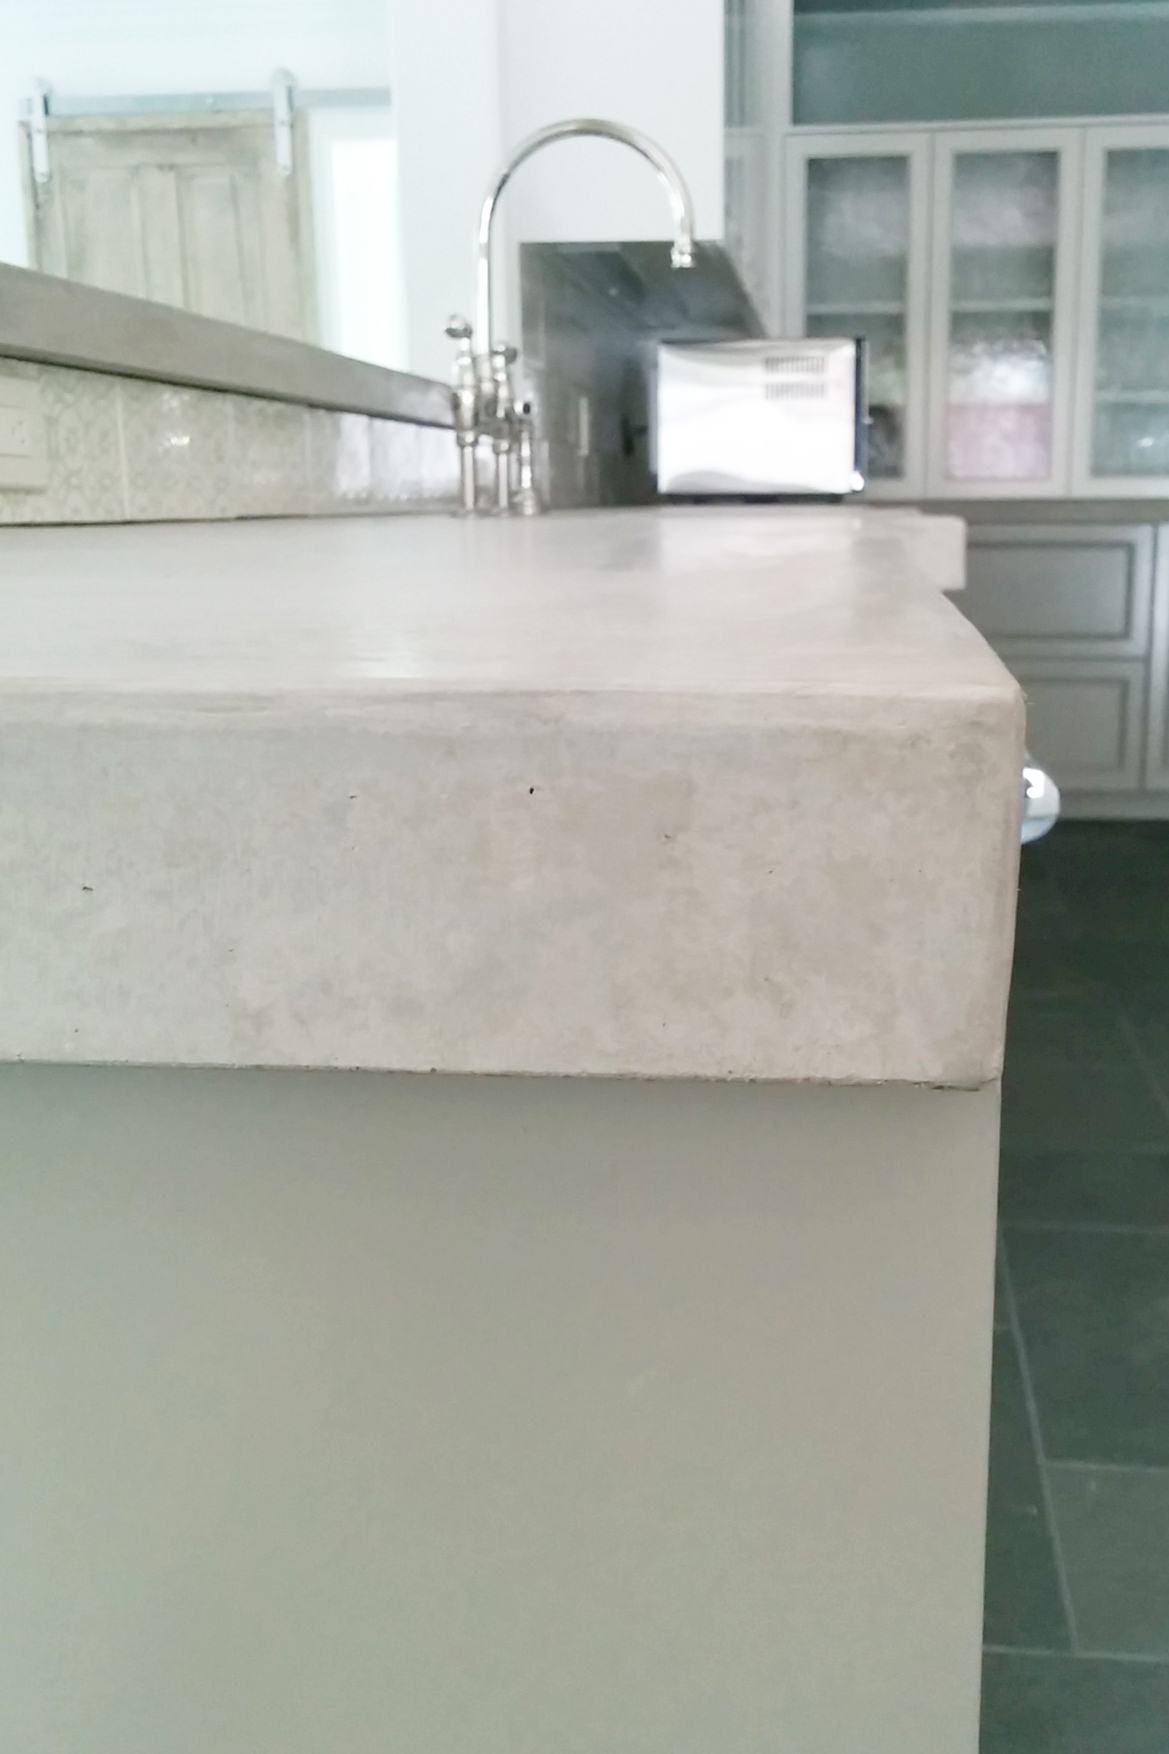 Detail of concrete kitchen counter by Gunnels's Concrete in Houston Texas.